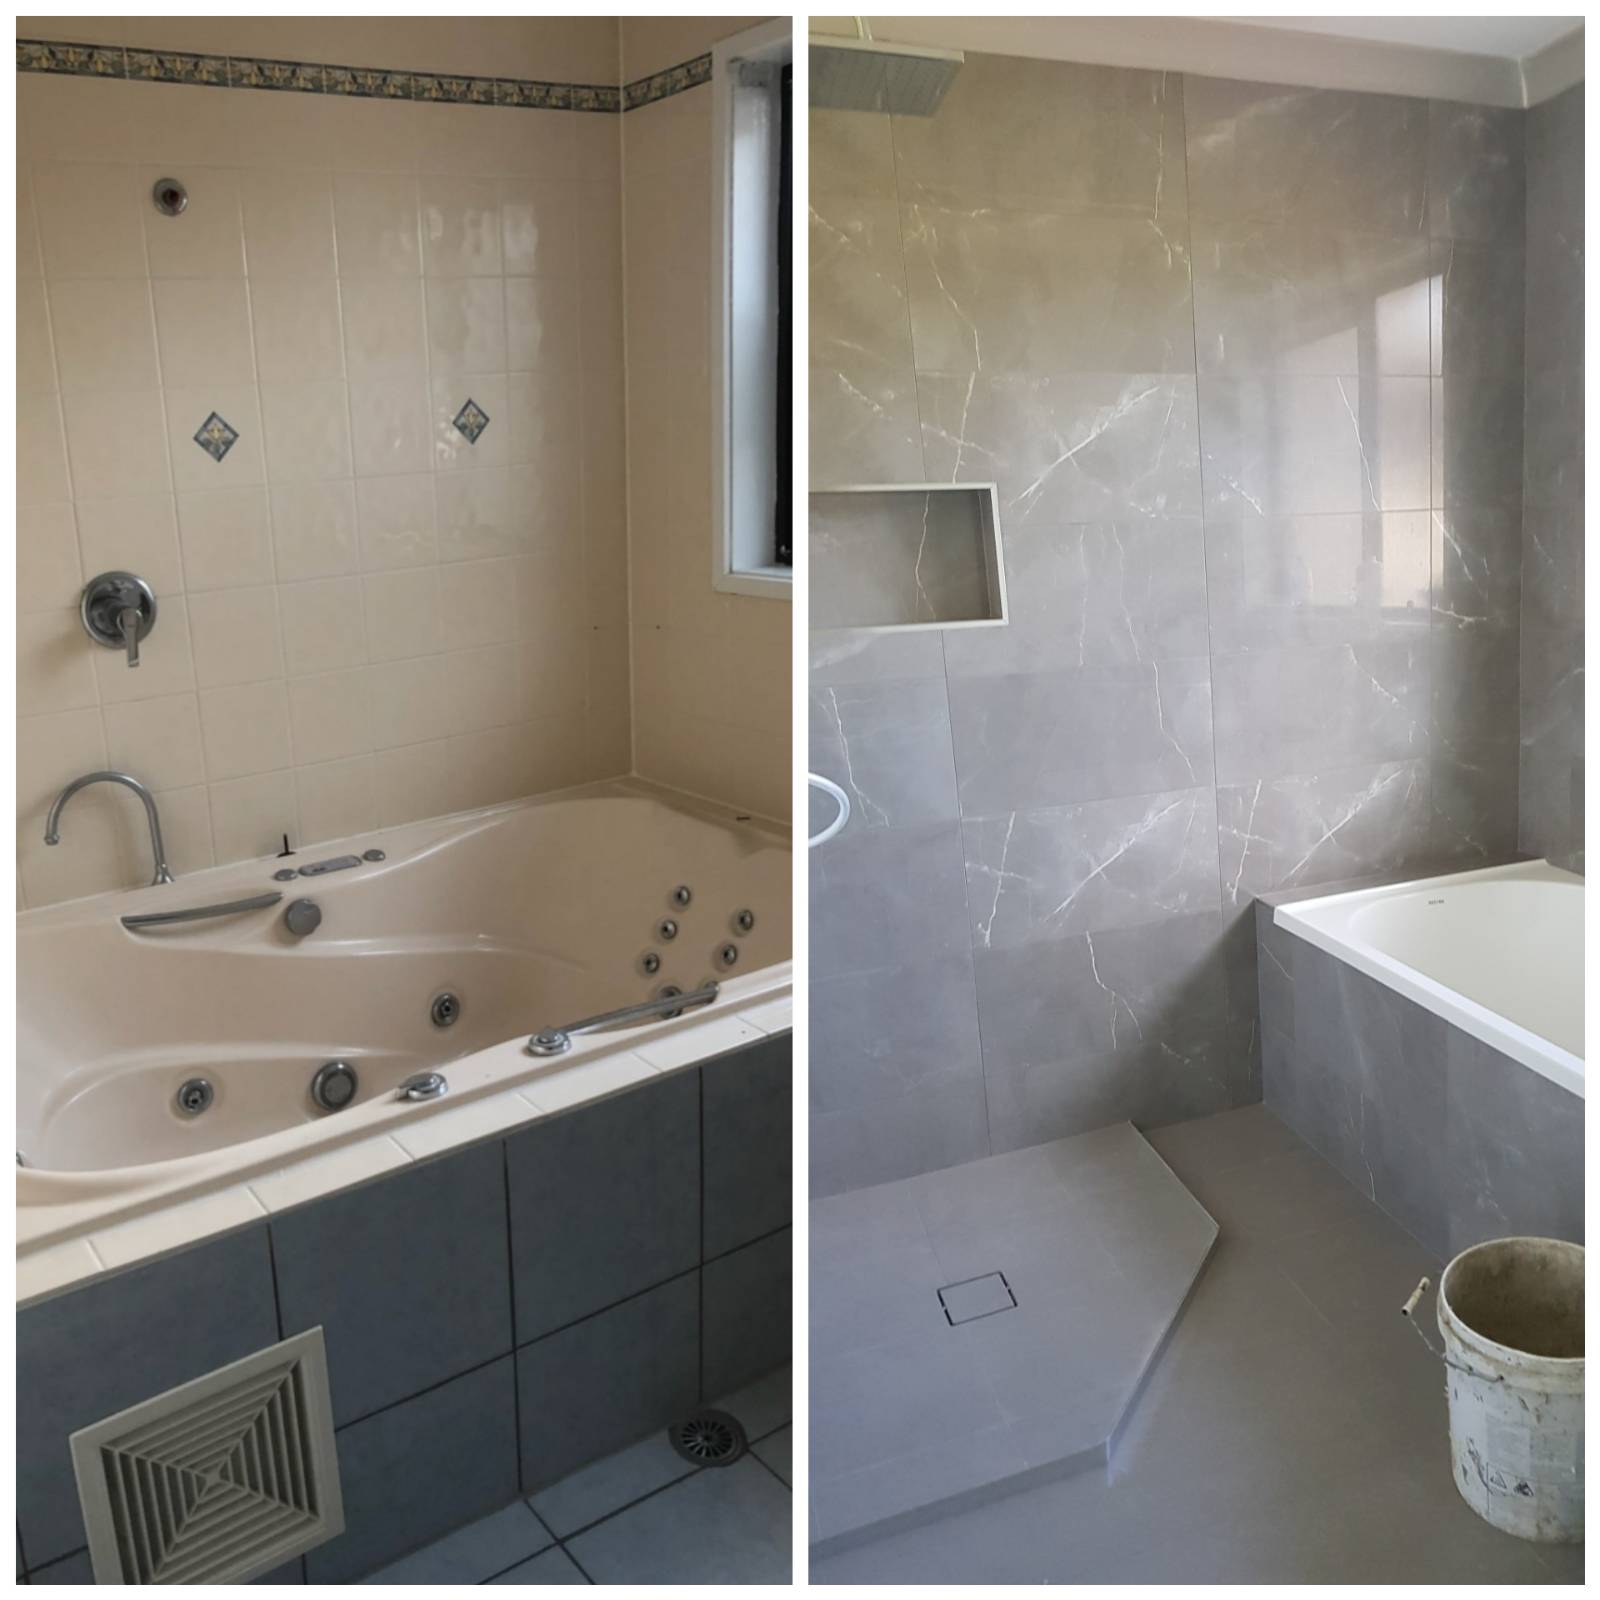 View: Our Bathroom Before and After